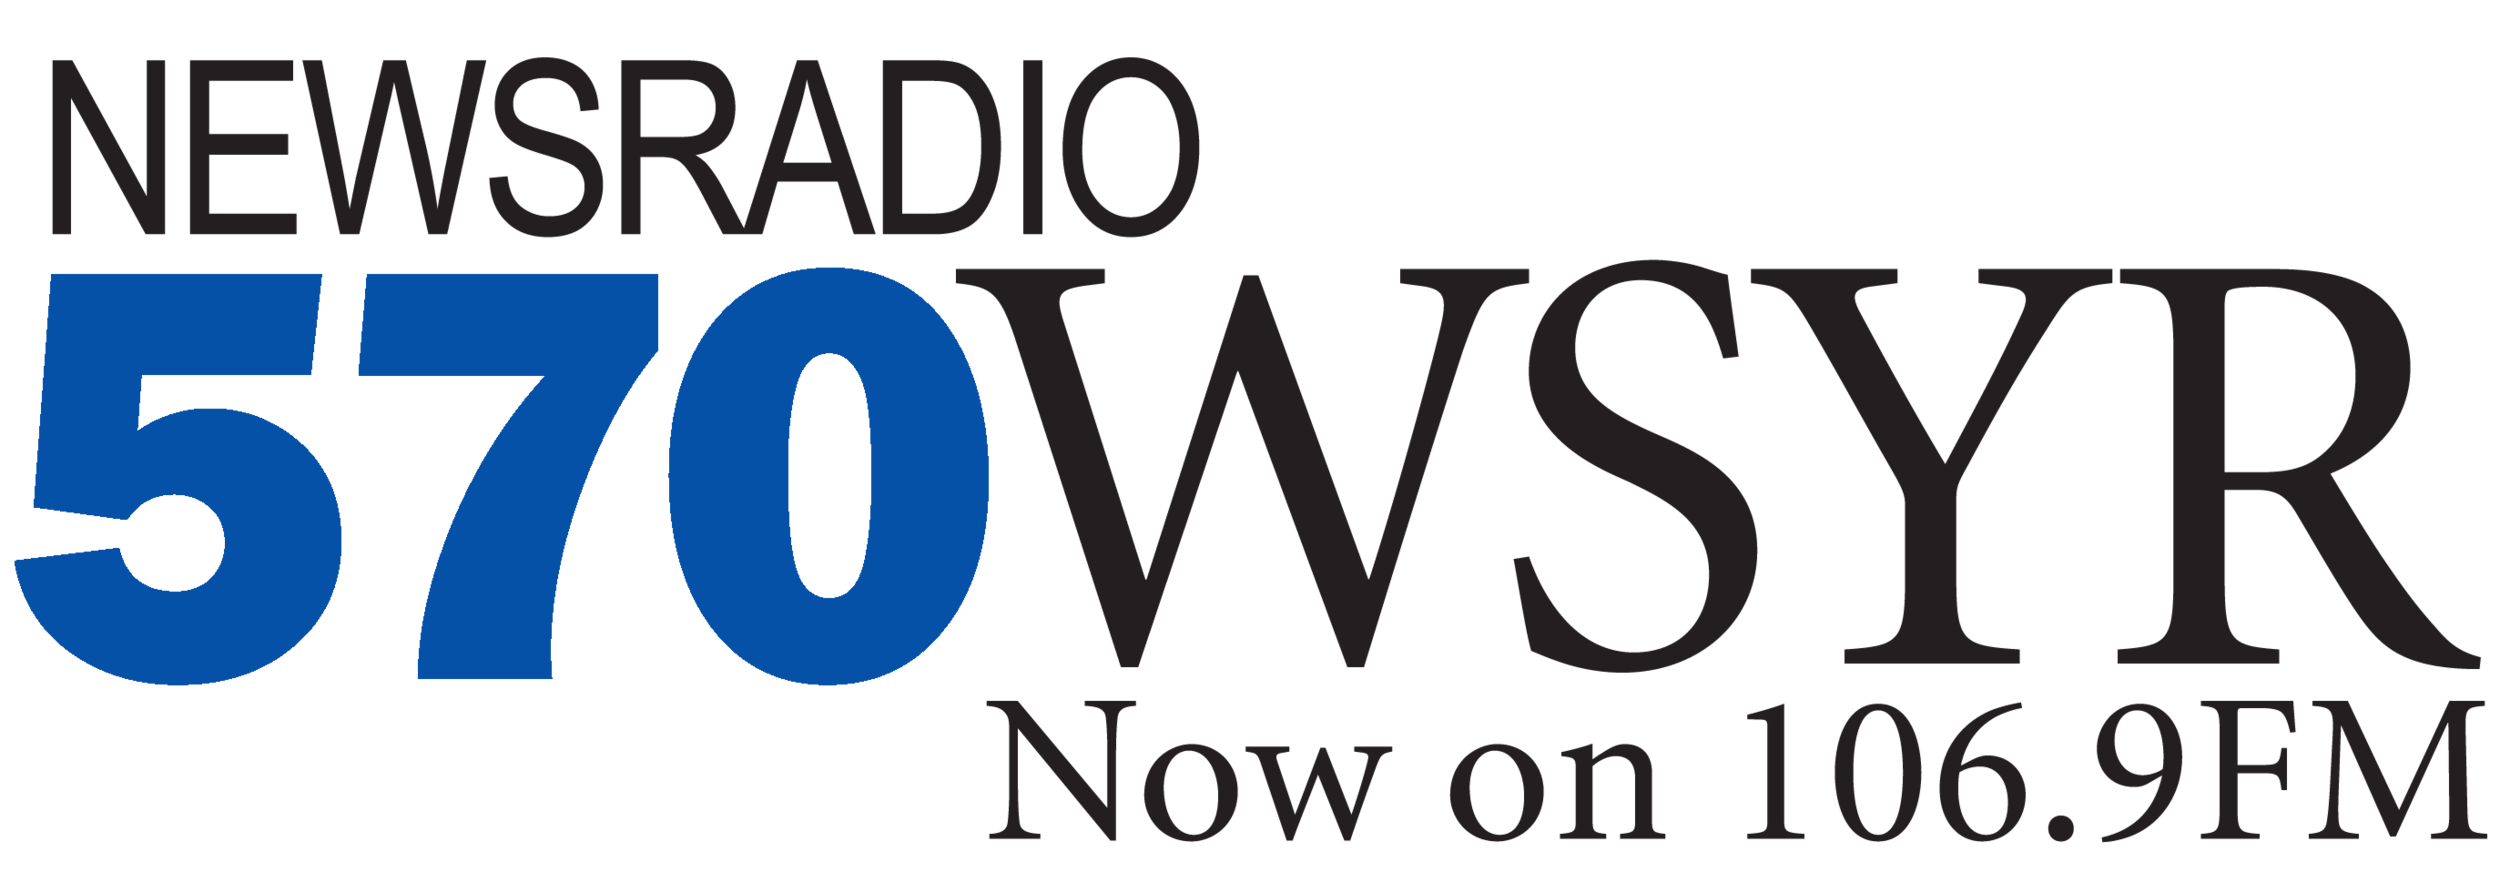 570WSYR_2013.png